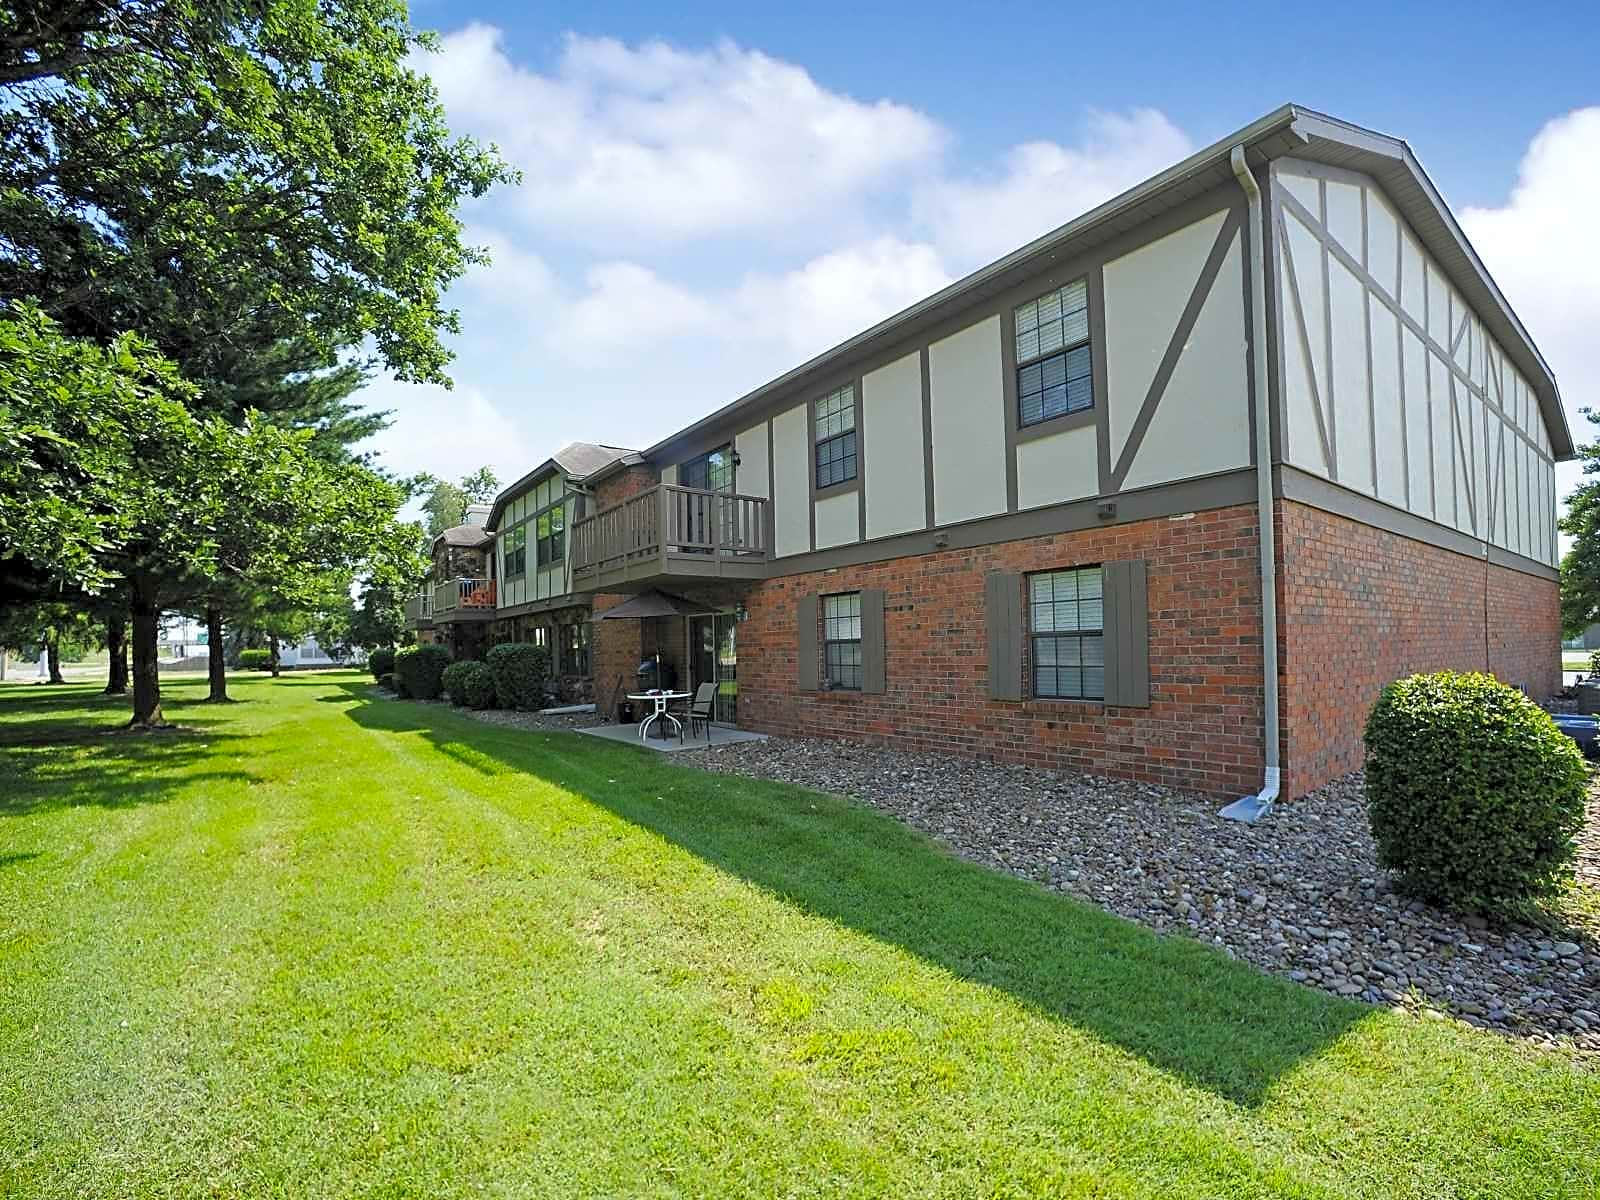 Photo: Evansville Apartment for Rent - $880.00 / month; 3 Bd & 2 Ba